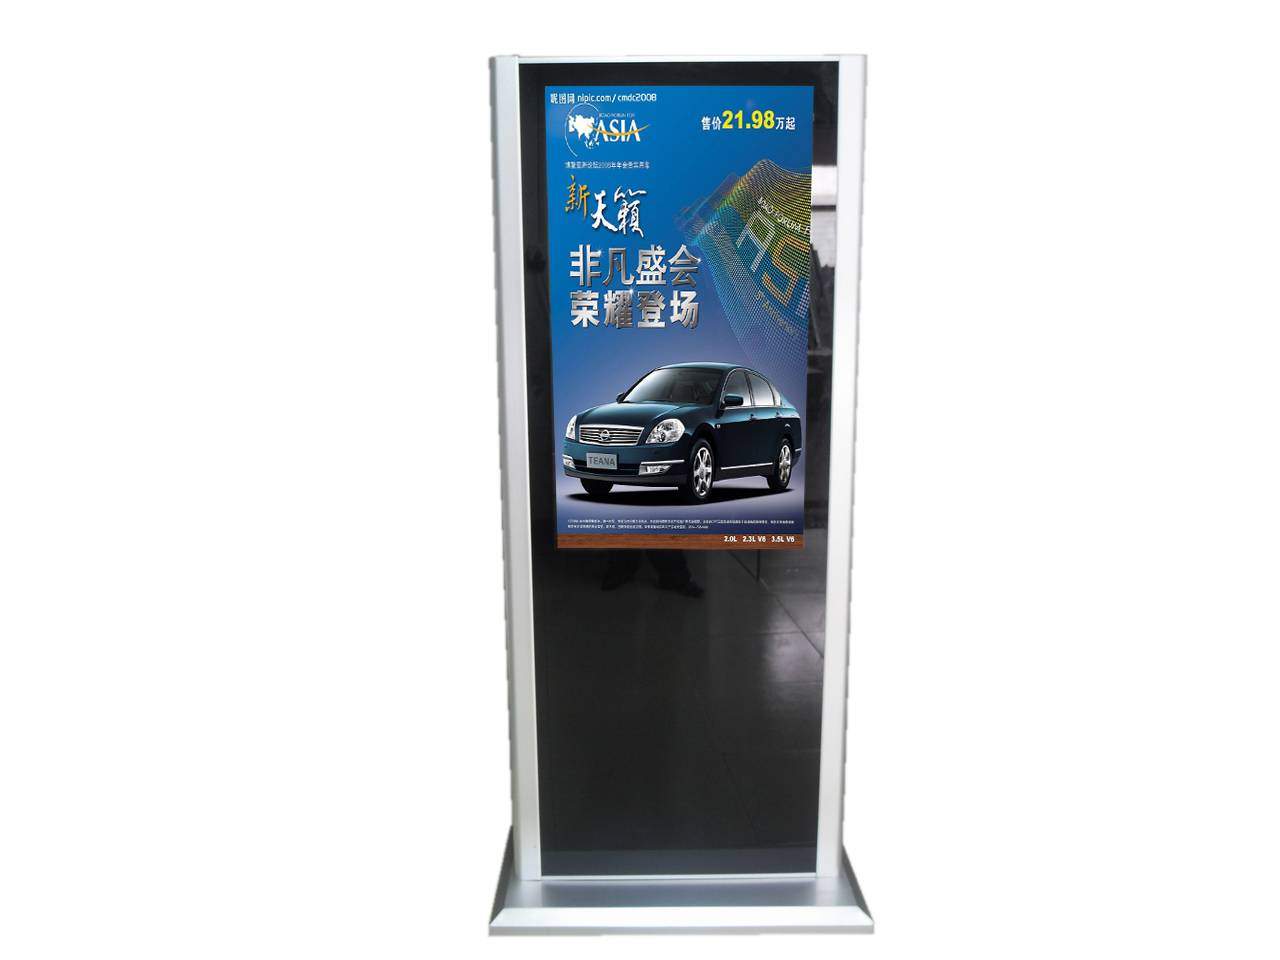 SANMAO 55 Inch Floor Standing LCD Advertising Media Player Display For Shopping Mall